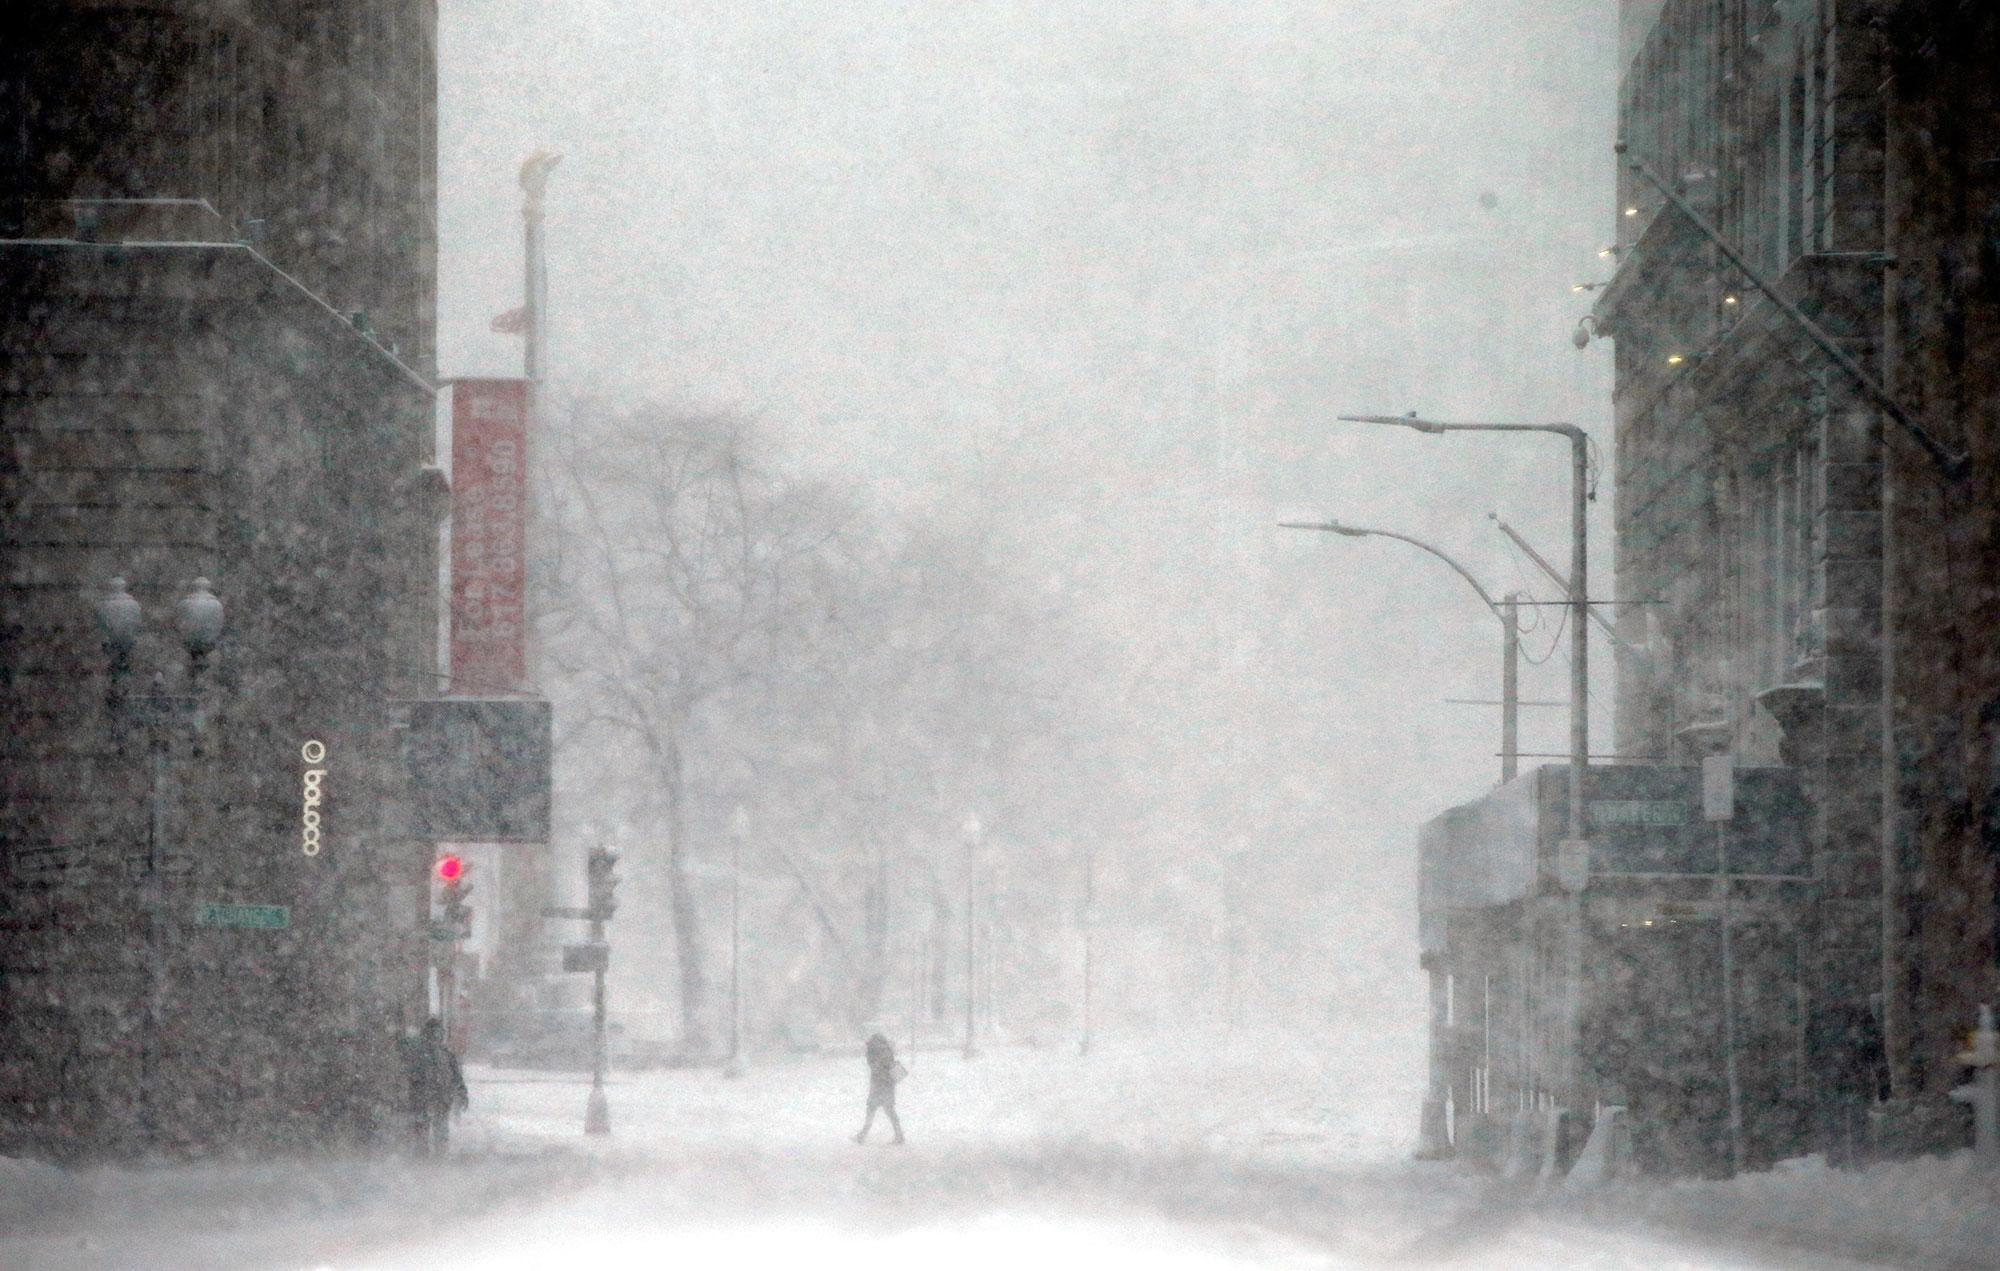 <p>A person crosses a street in blowing snow during a winter storm Tuesday, March 14, 2017, in Boston. (AP Photo/Michael Dwyer) </p>